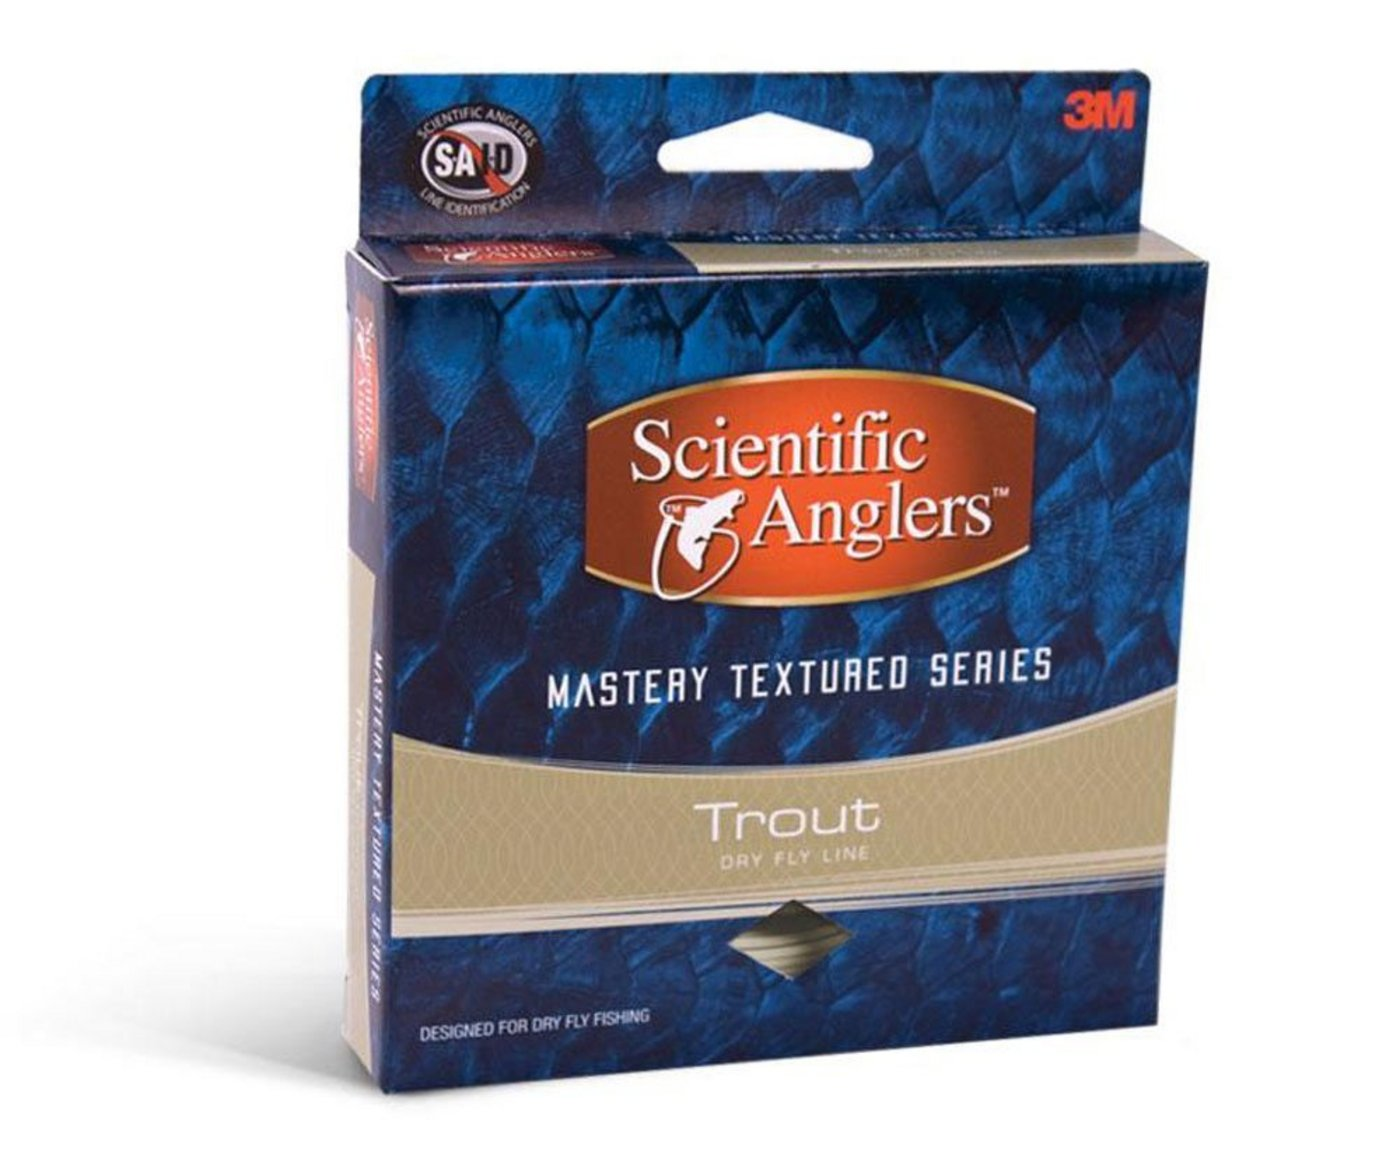 Scientific Anglers Trout Stalker Fly Fishing Line with Loop WF3F